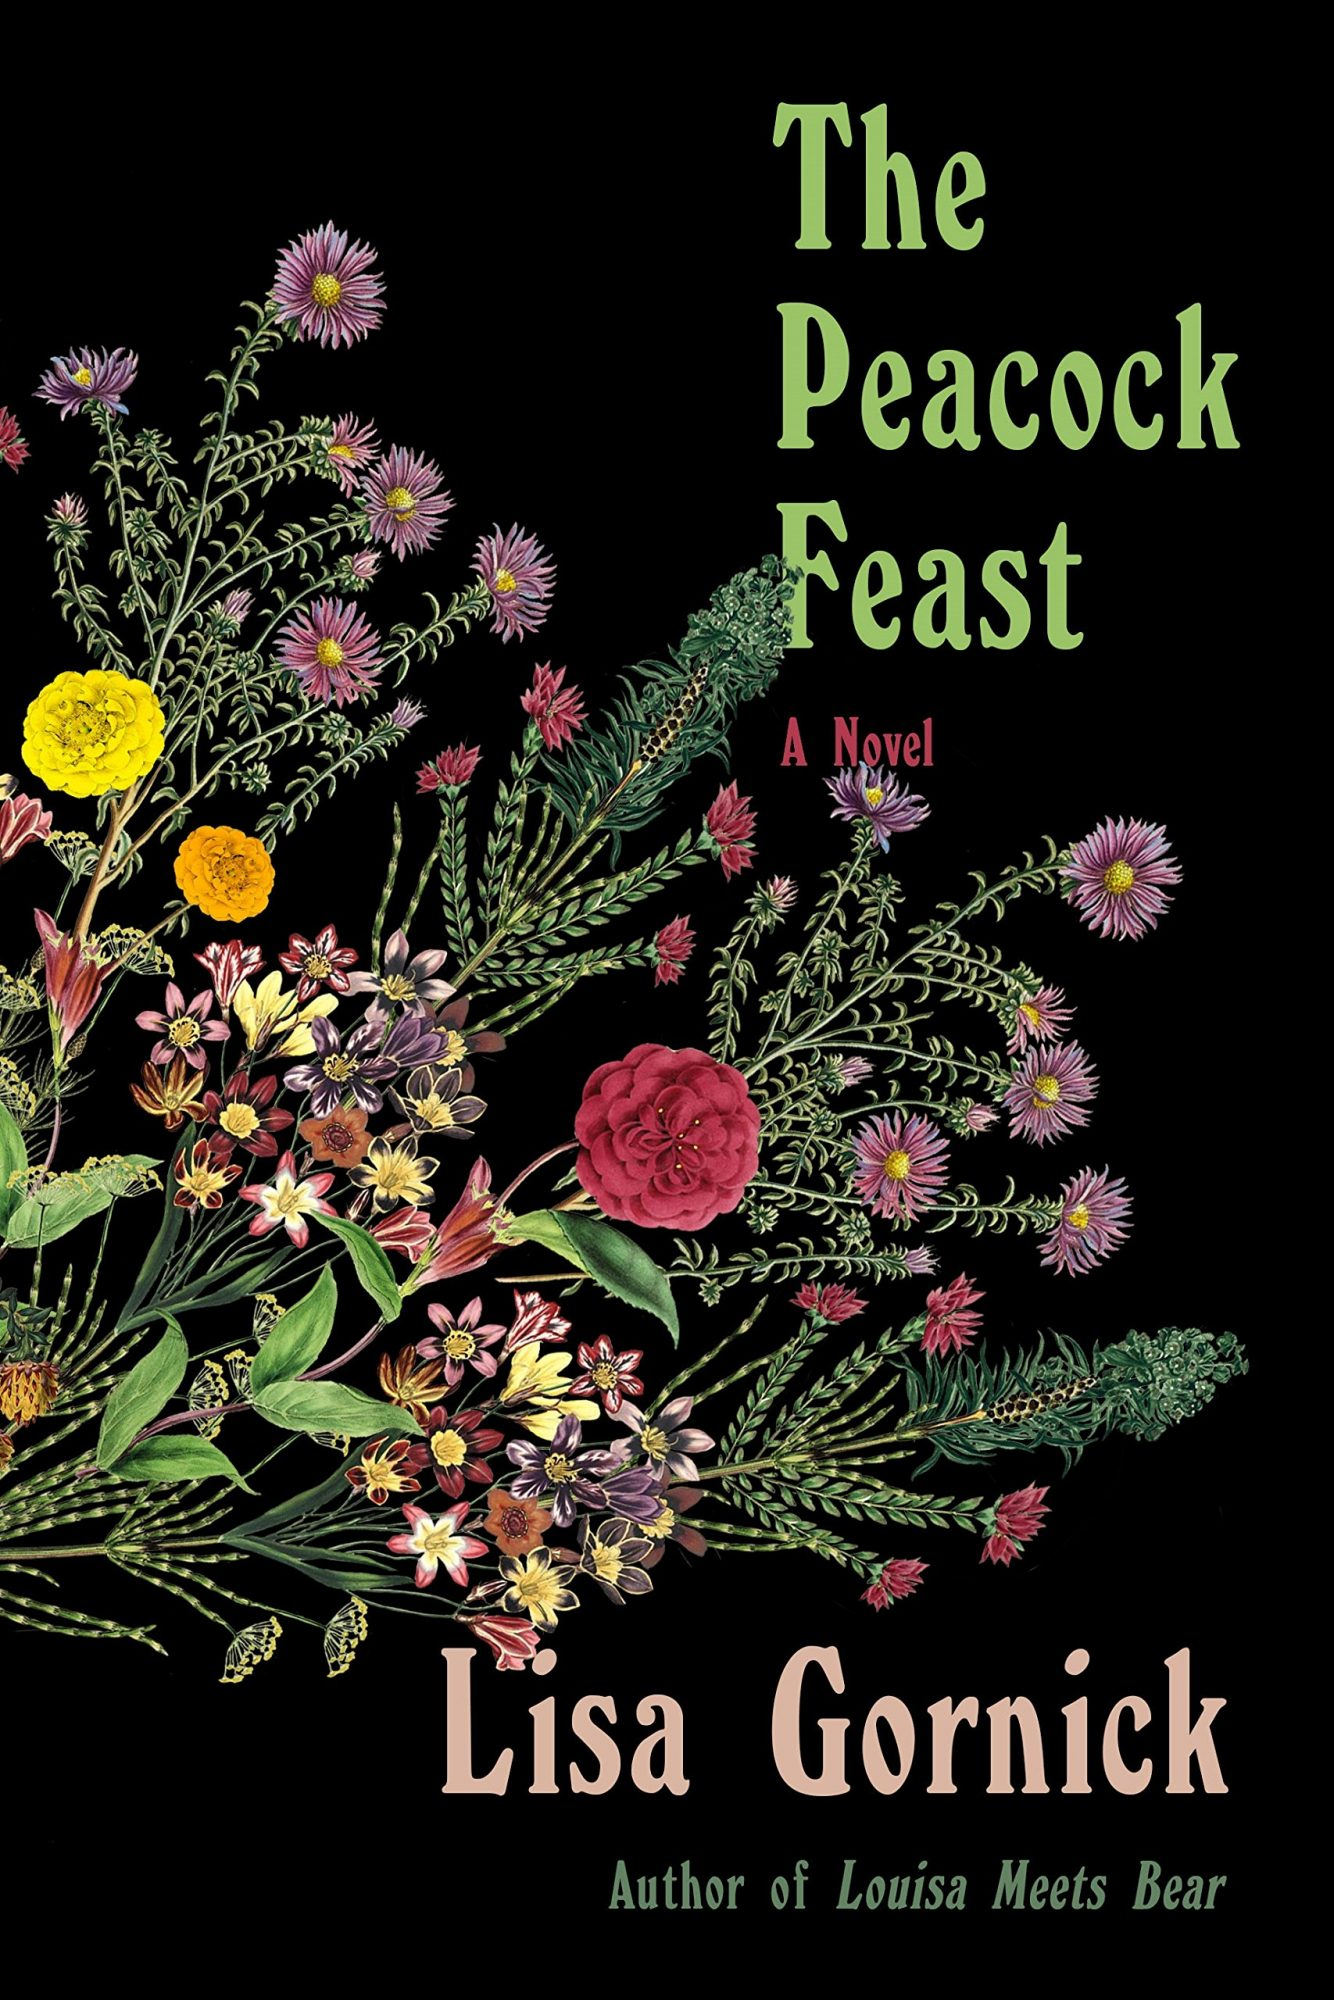 The Peacock Feast by Lisa Gornick